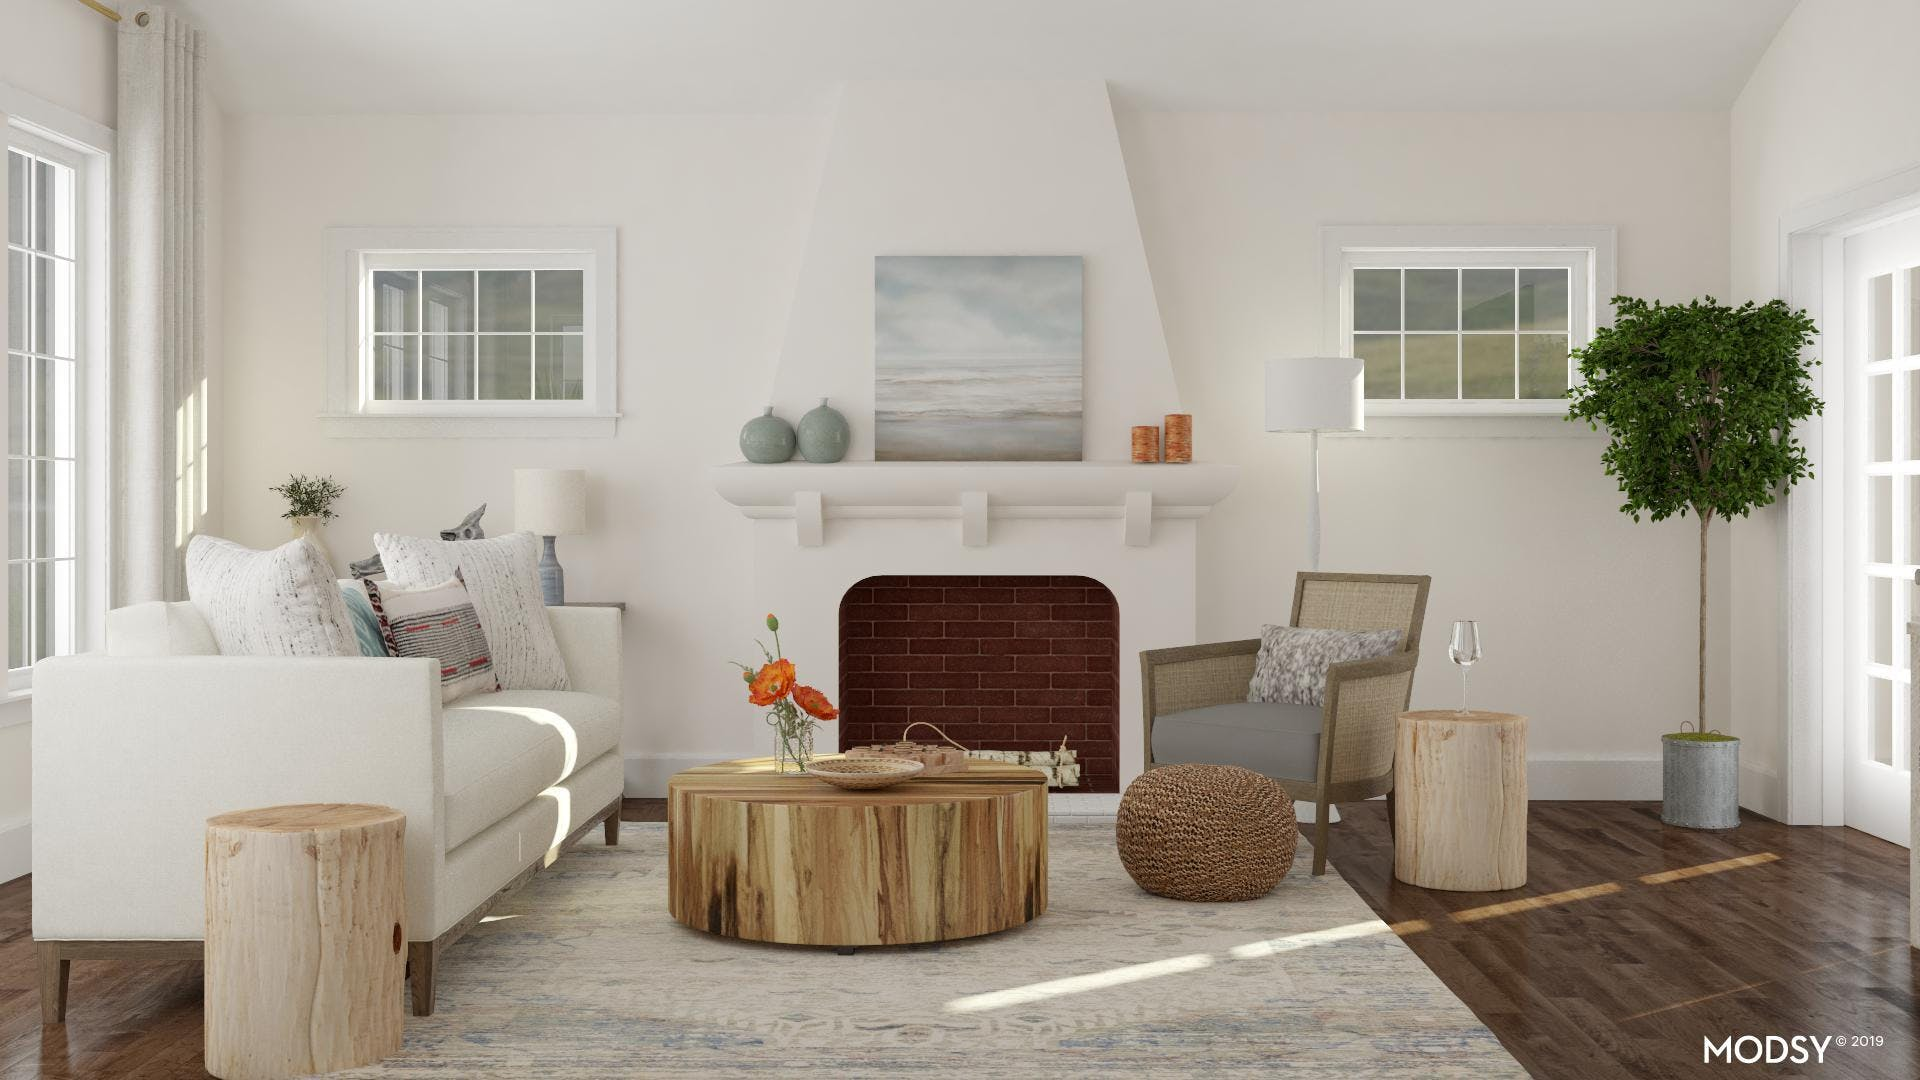 It's All In The Details For This Coastal LIving Room